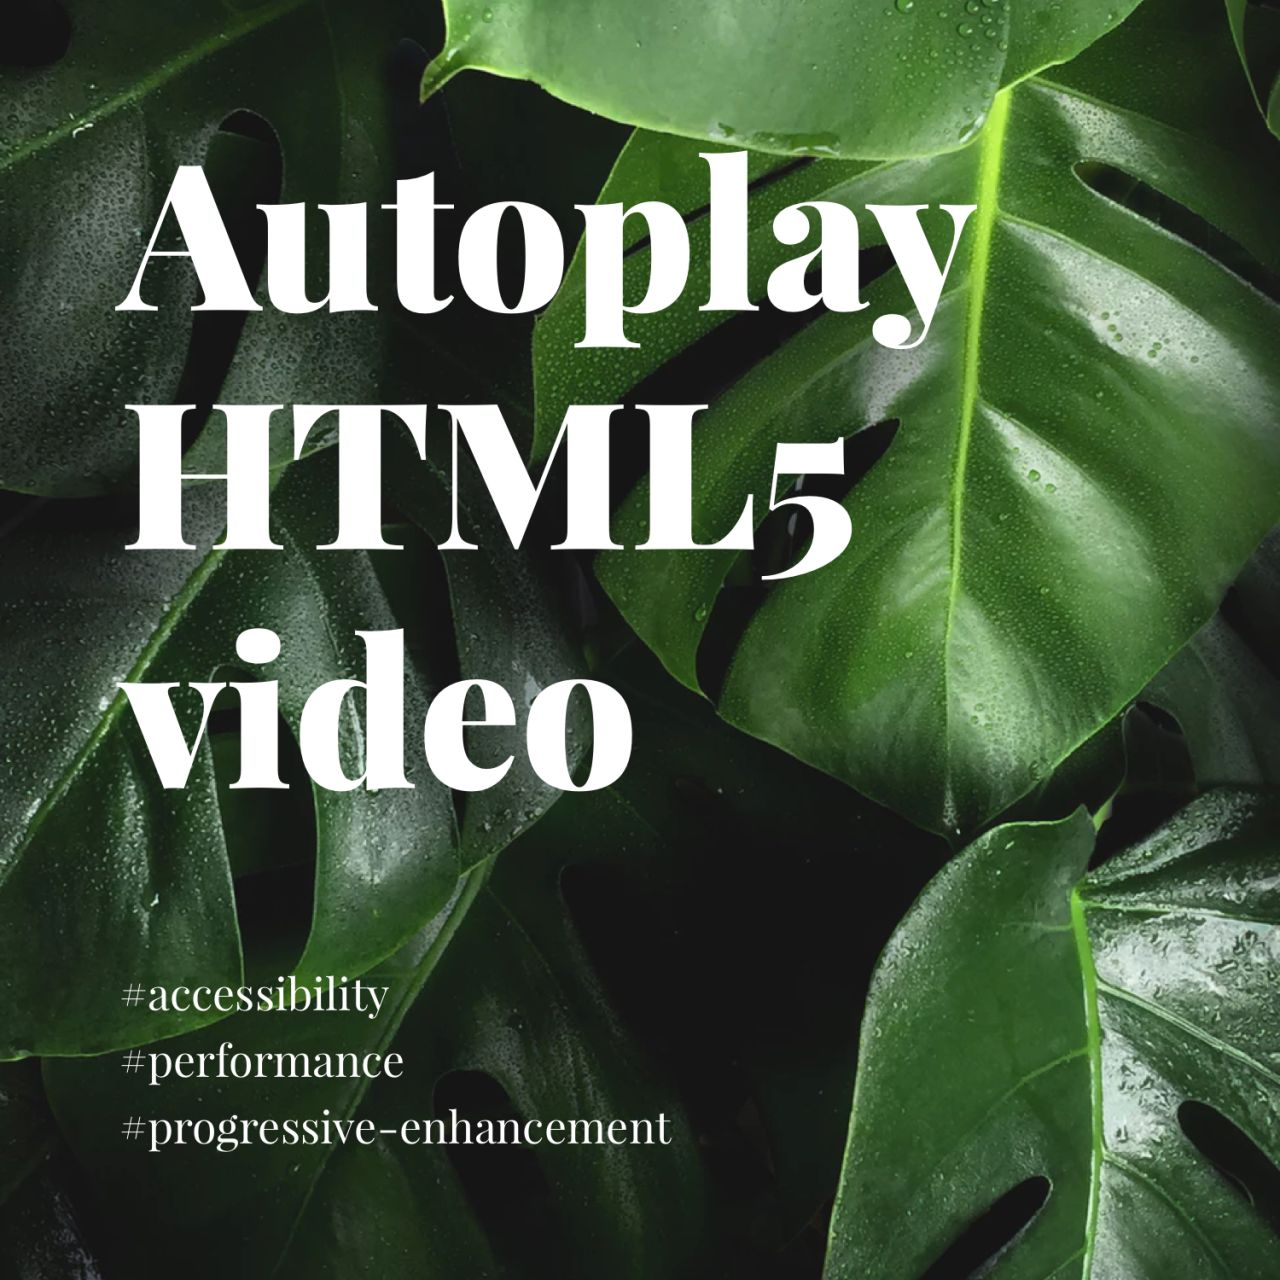 Autoplay HTML5 video on iOS, android and desktop: Rob